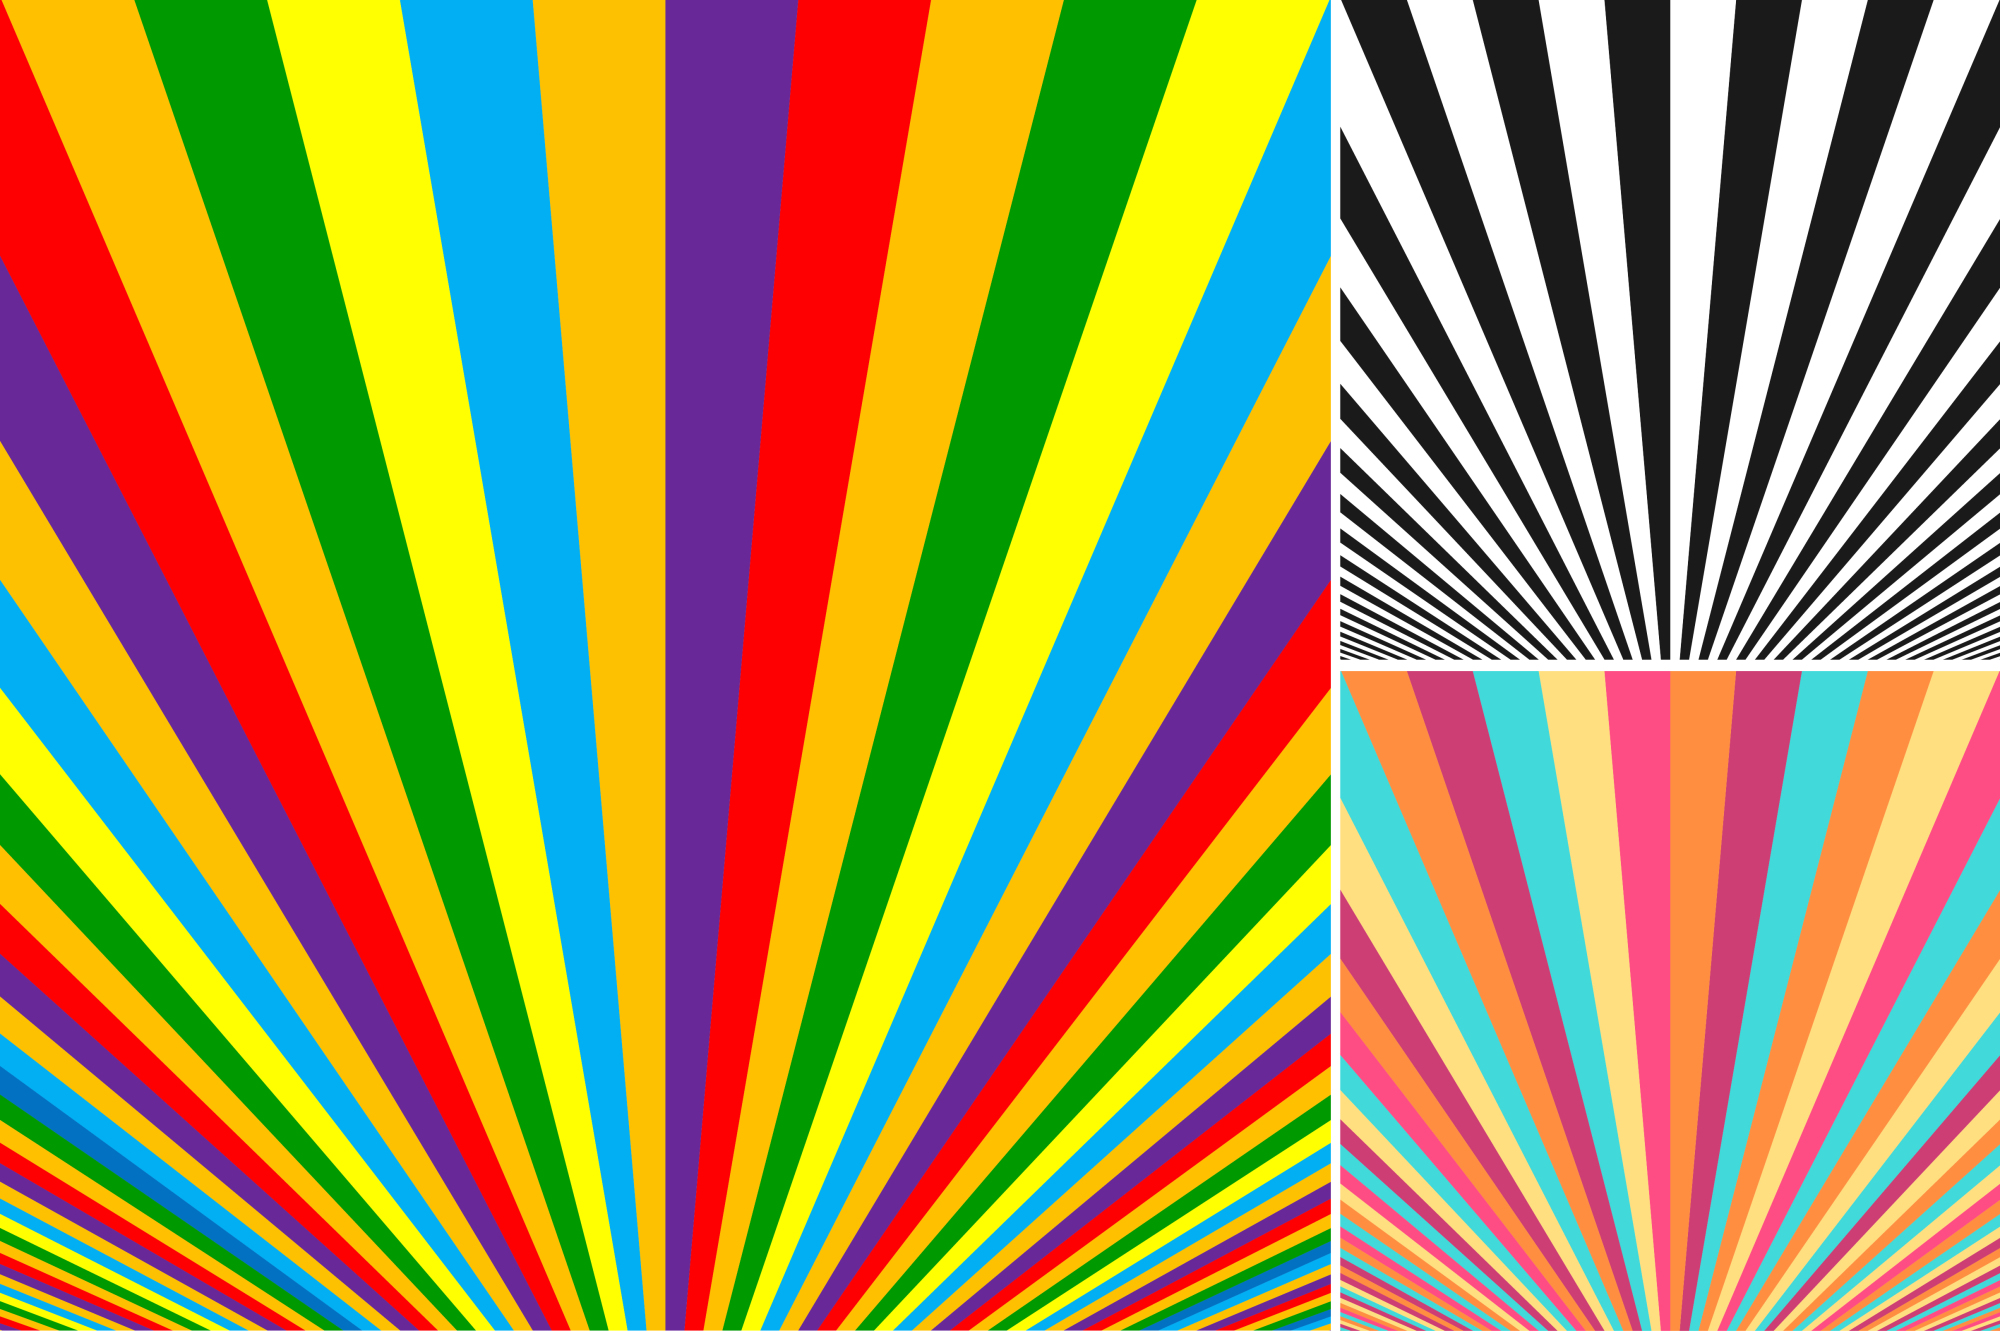 Collection of striped backgrounds. example image 5